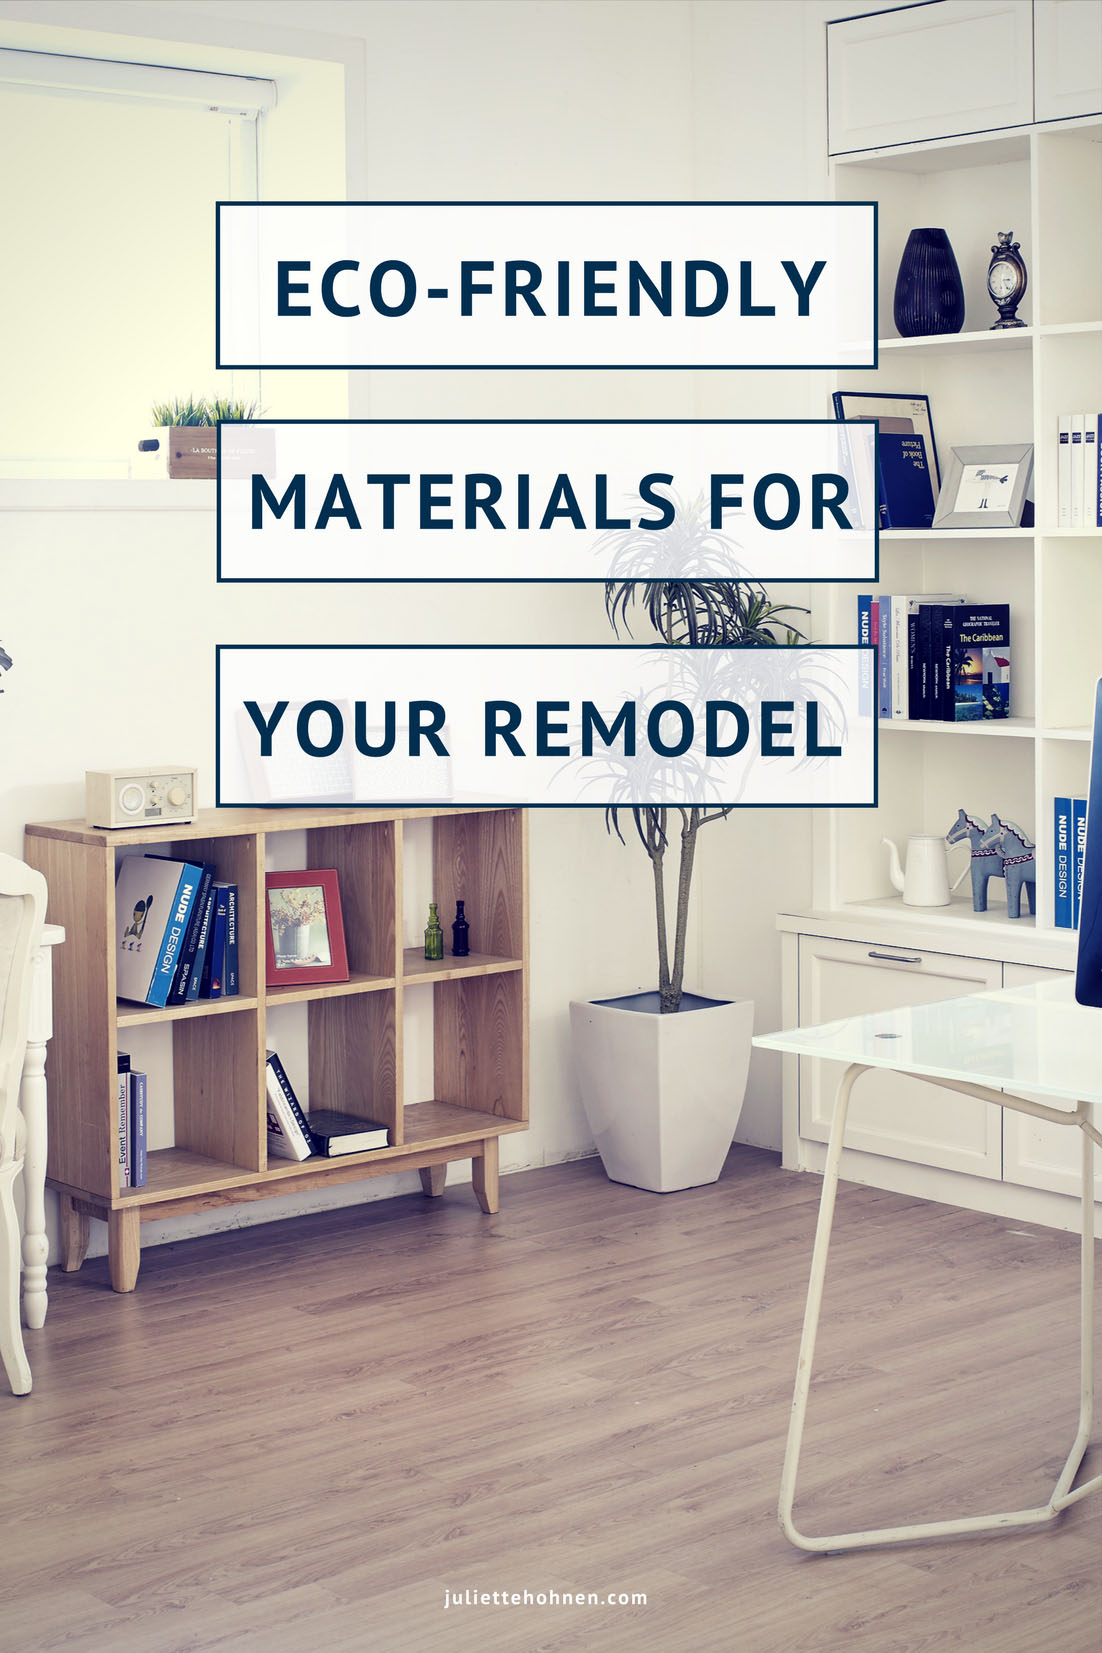 Eco-Friendly Materials when Remodeling